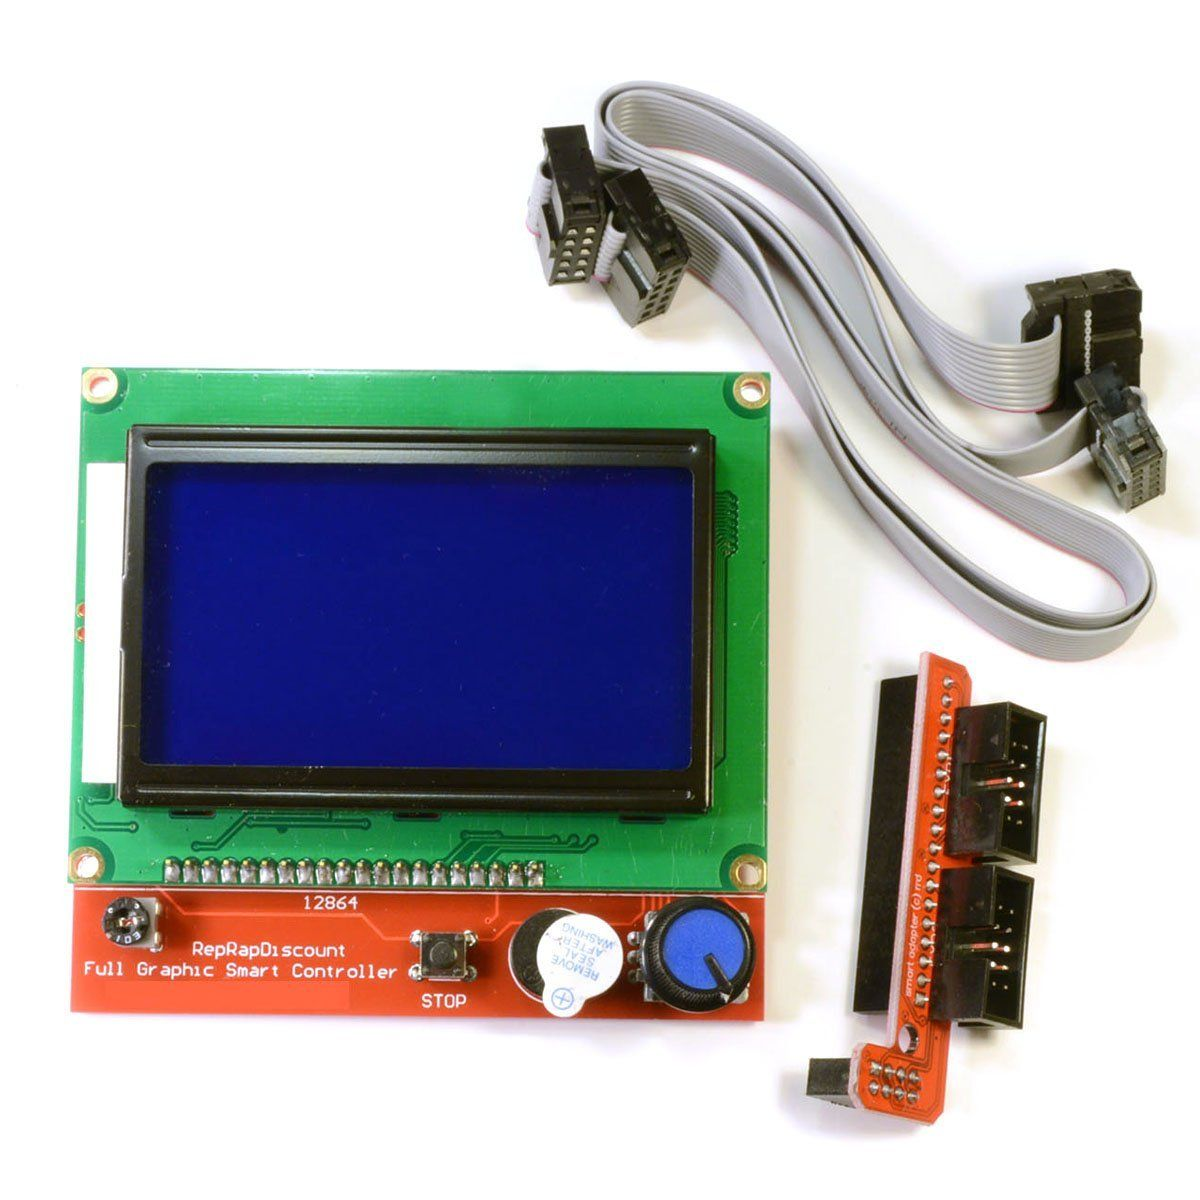 Full Graphic Smart Controller LCD Display for RAMPS 1.4 <font><b>RepRap</b></font> 3D Printer Electronics (12864 display with SD card reader)